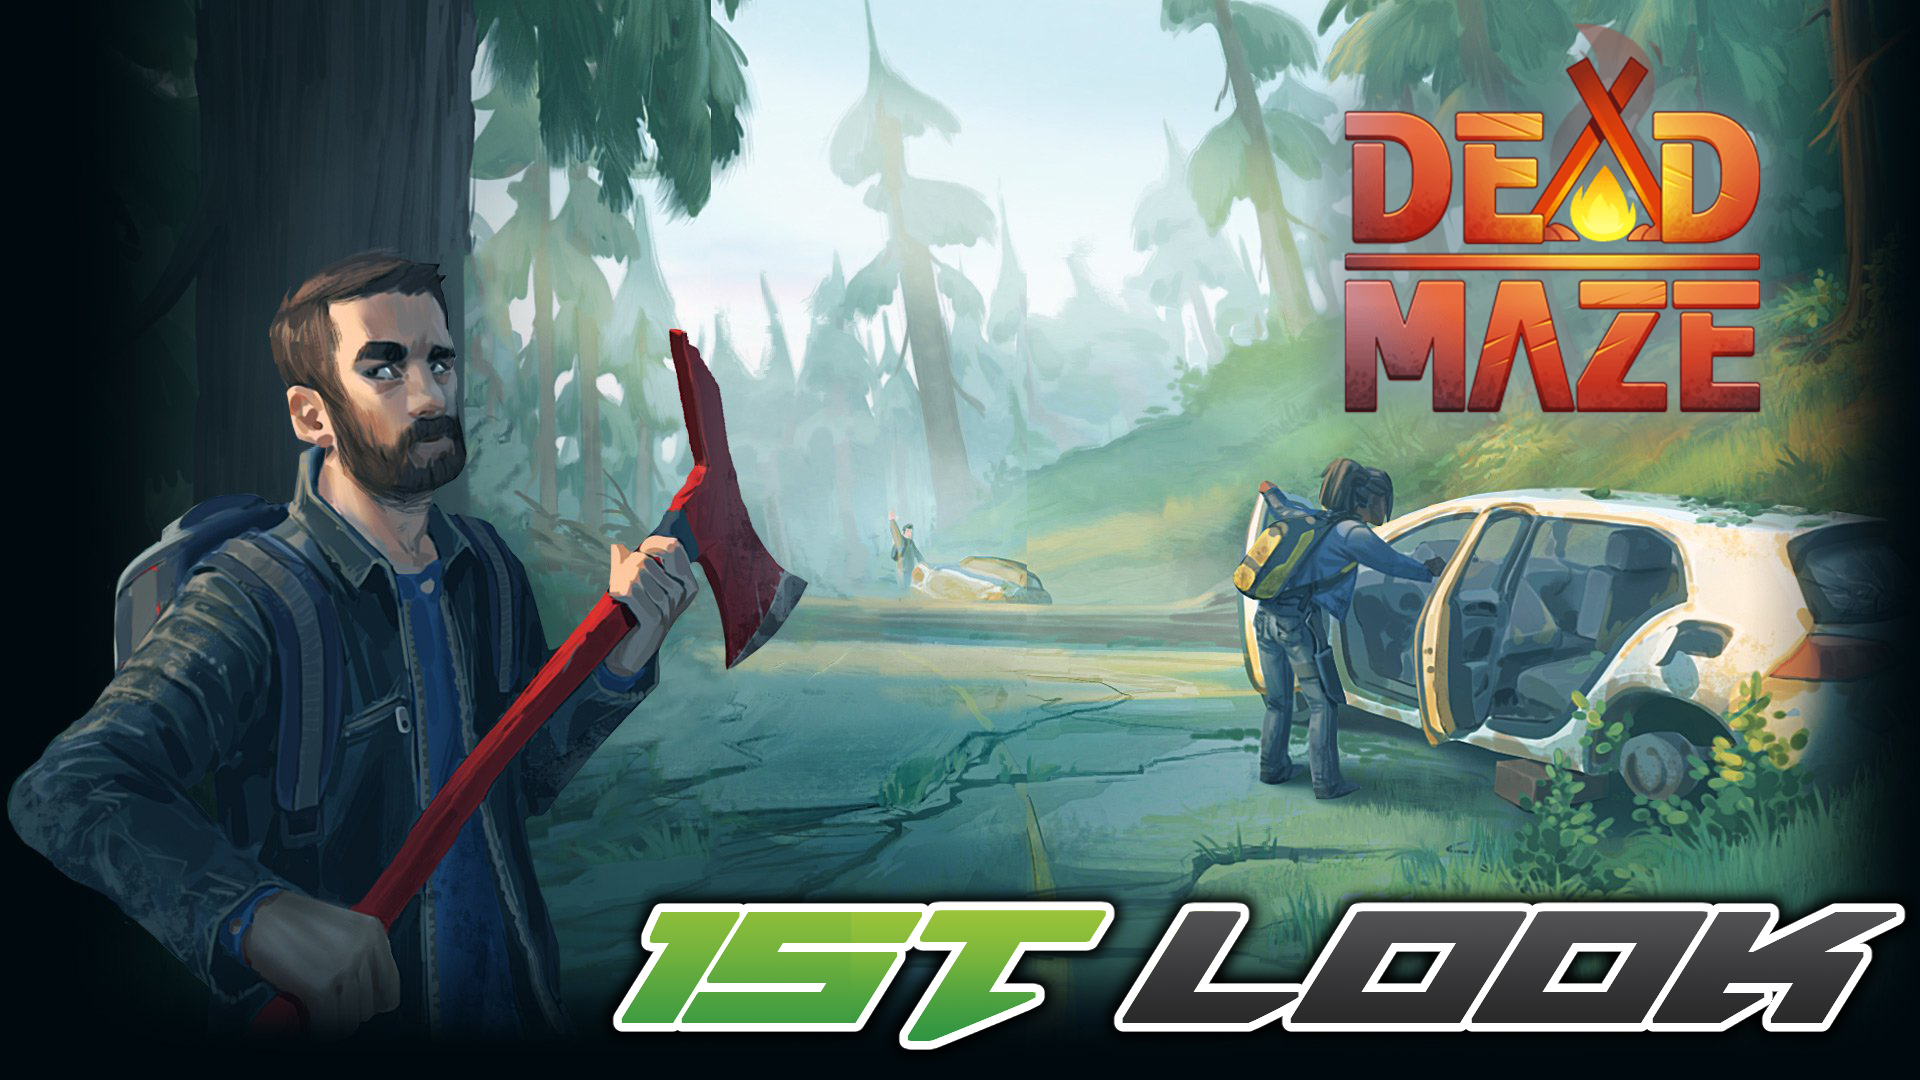 Colt takes a first look at Dead Maze